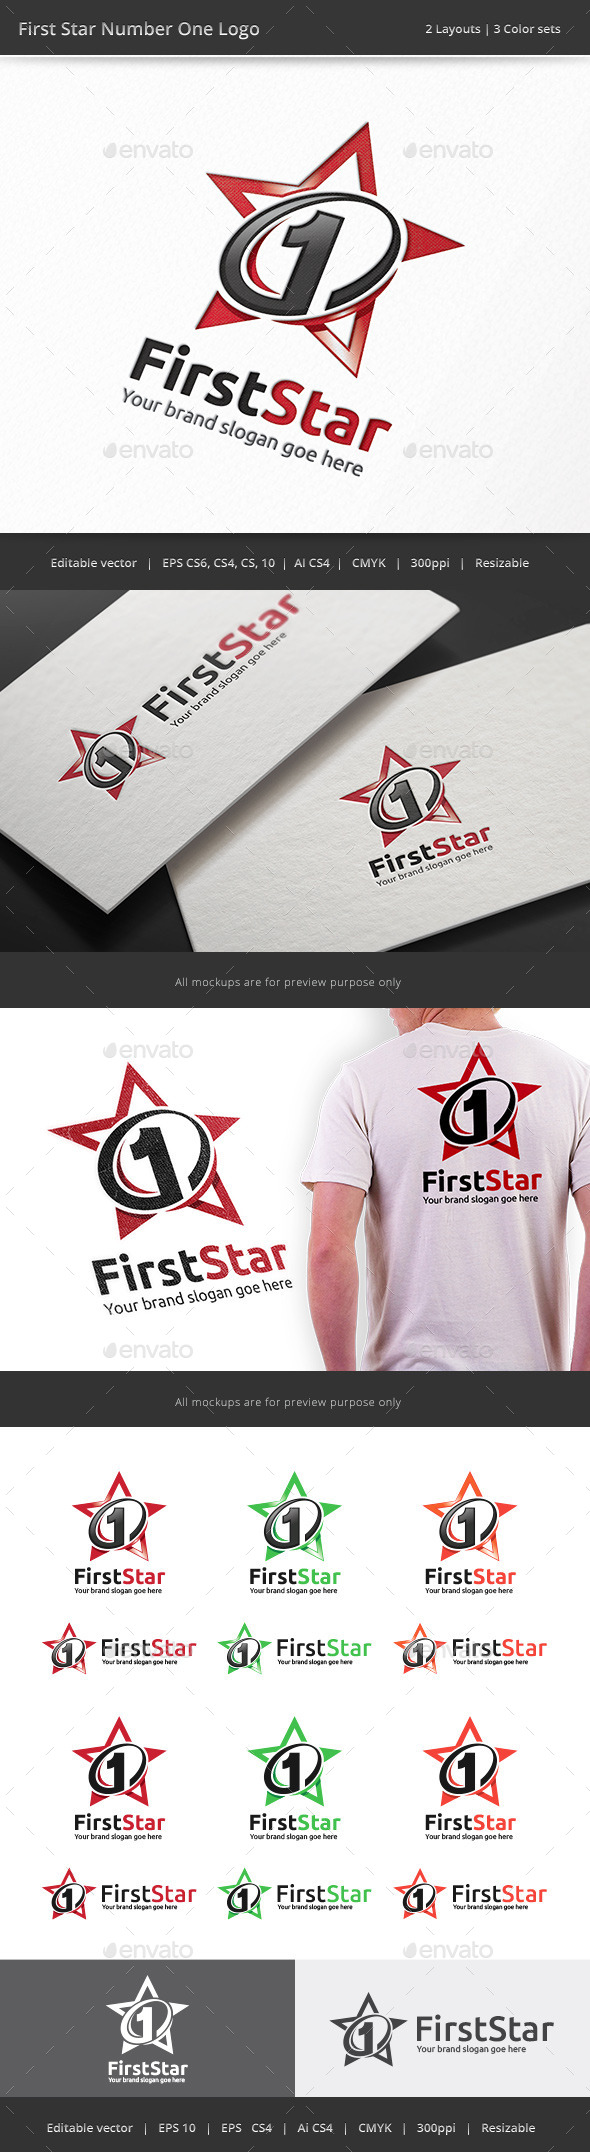 Number One First Star Logo - Numbers Logo Templates